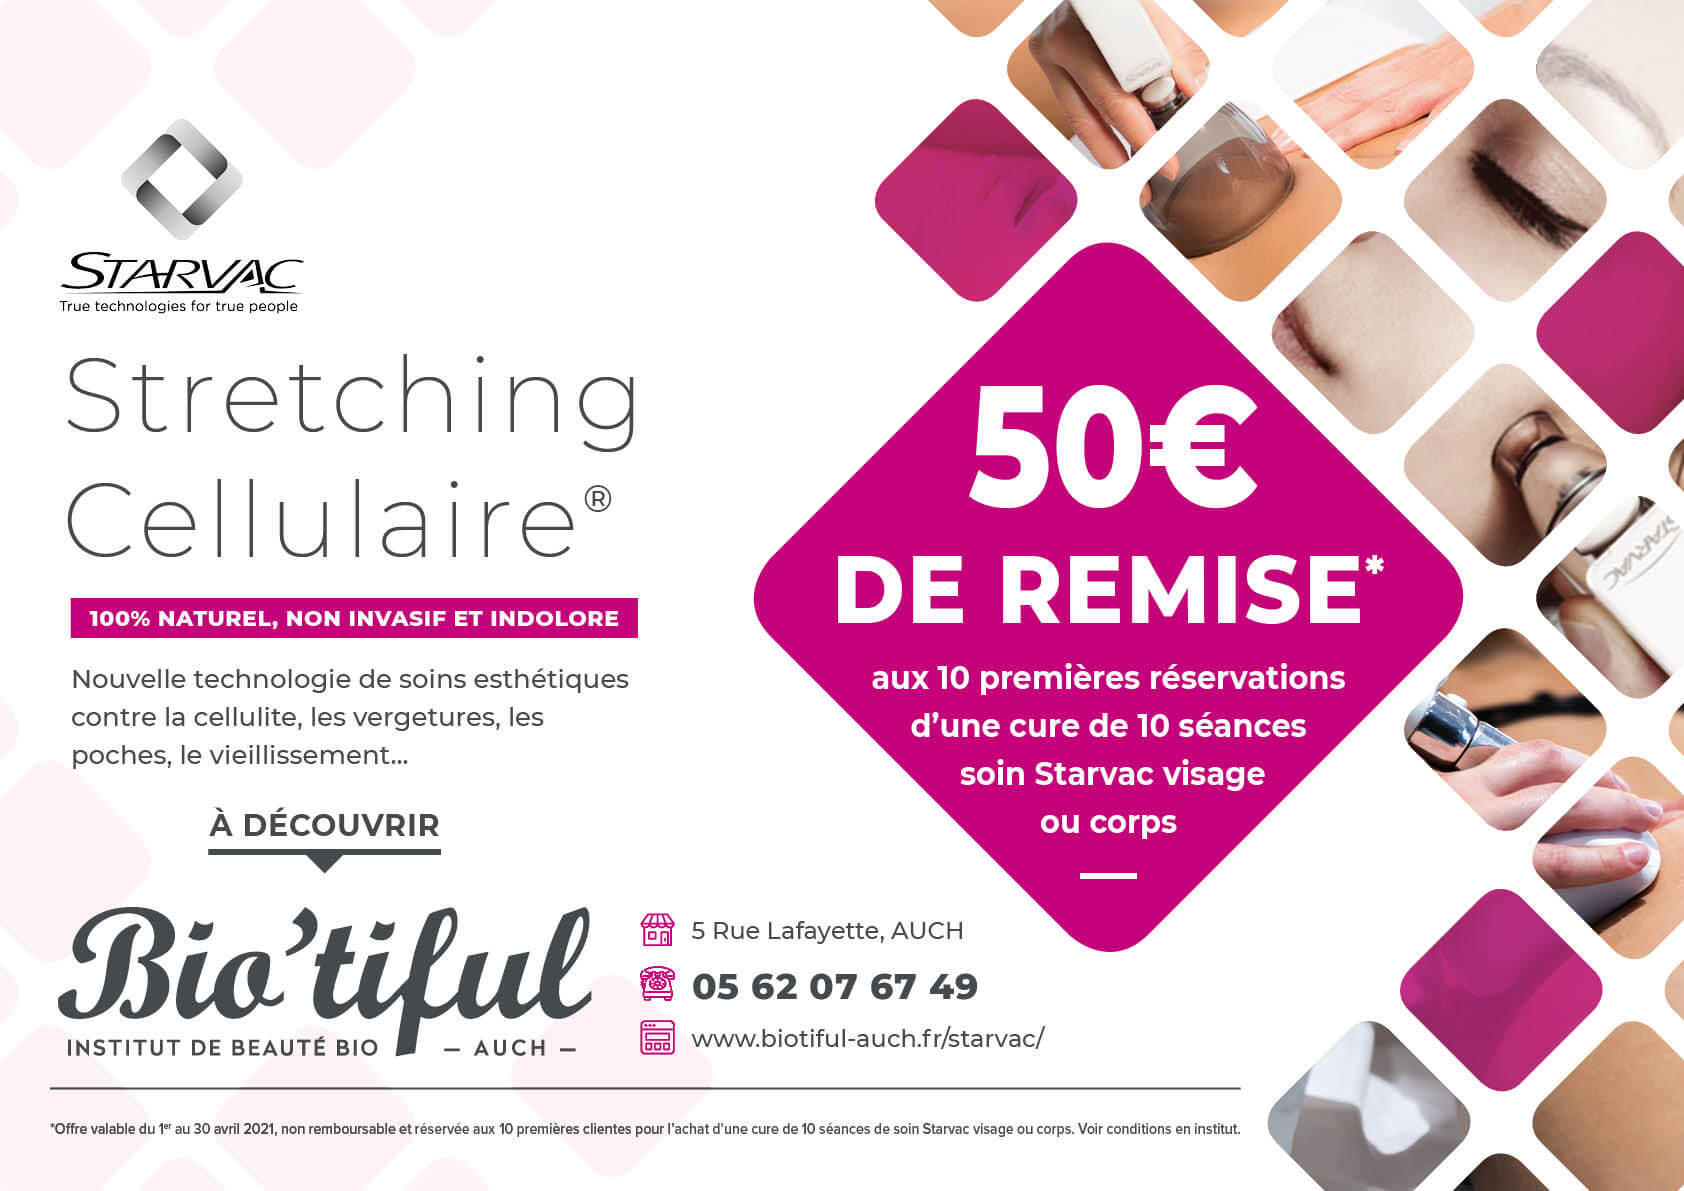 offre promo biotiful 2021 04 starvac stretching cellulaire